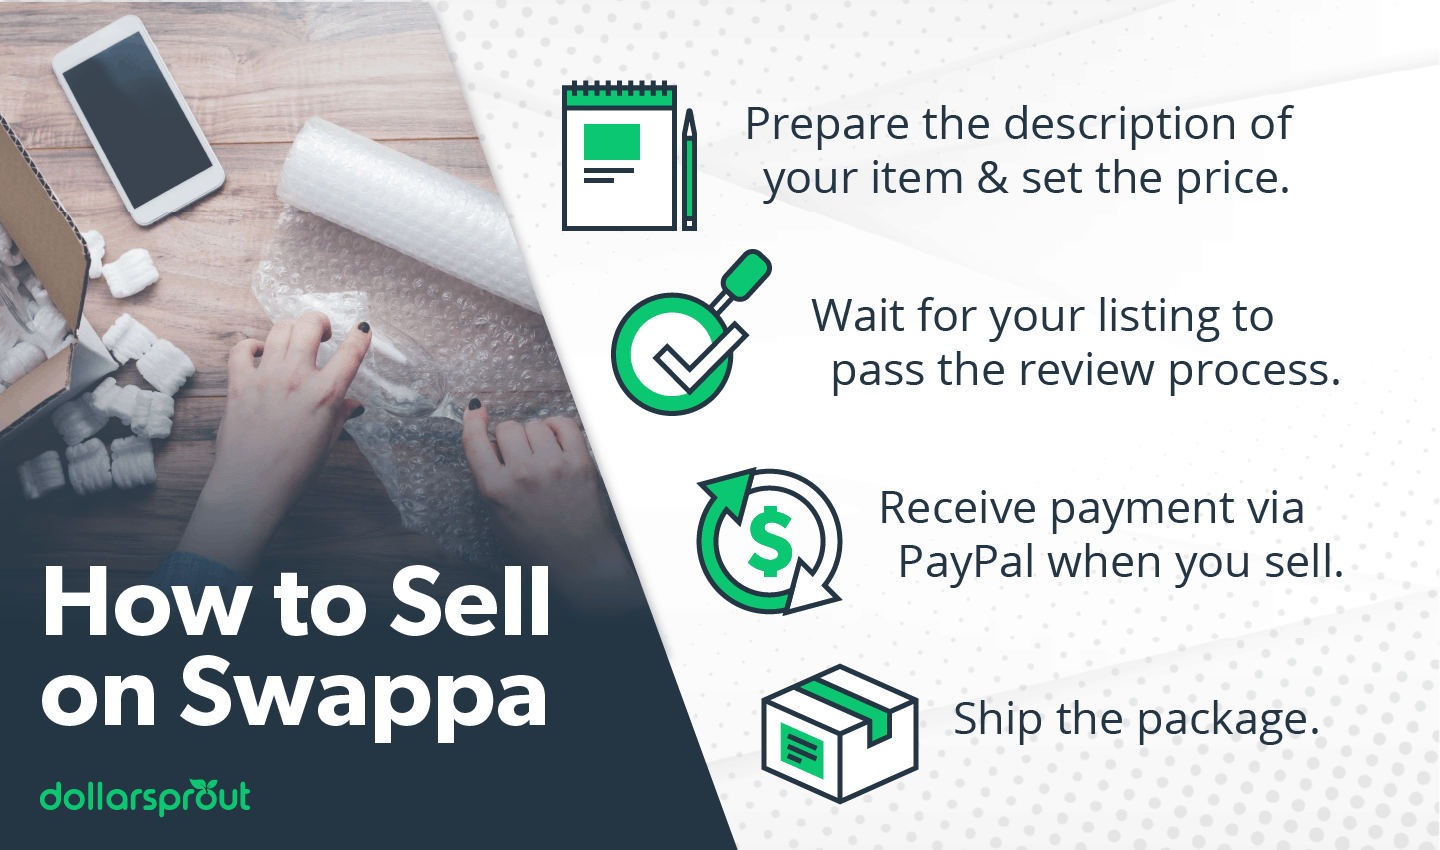 how to sell on swappa infographic